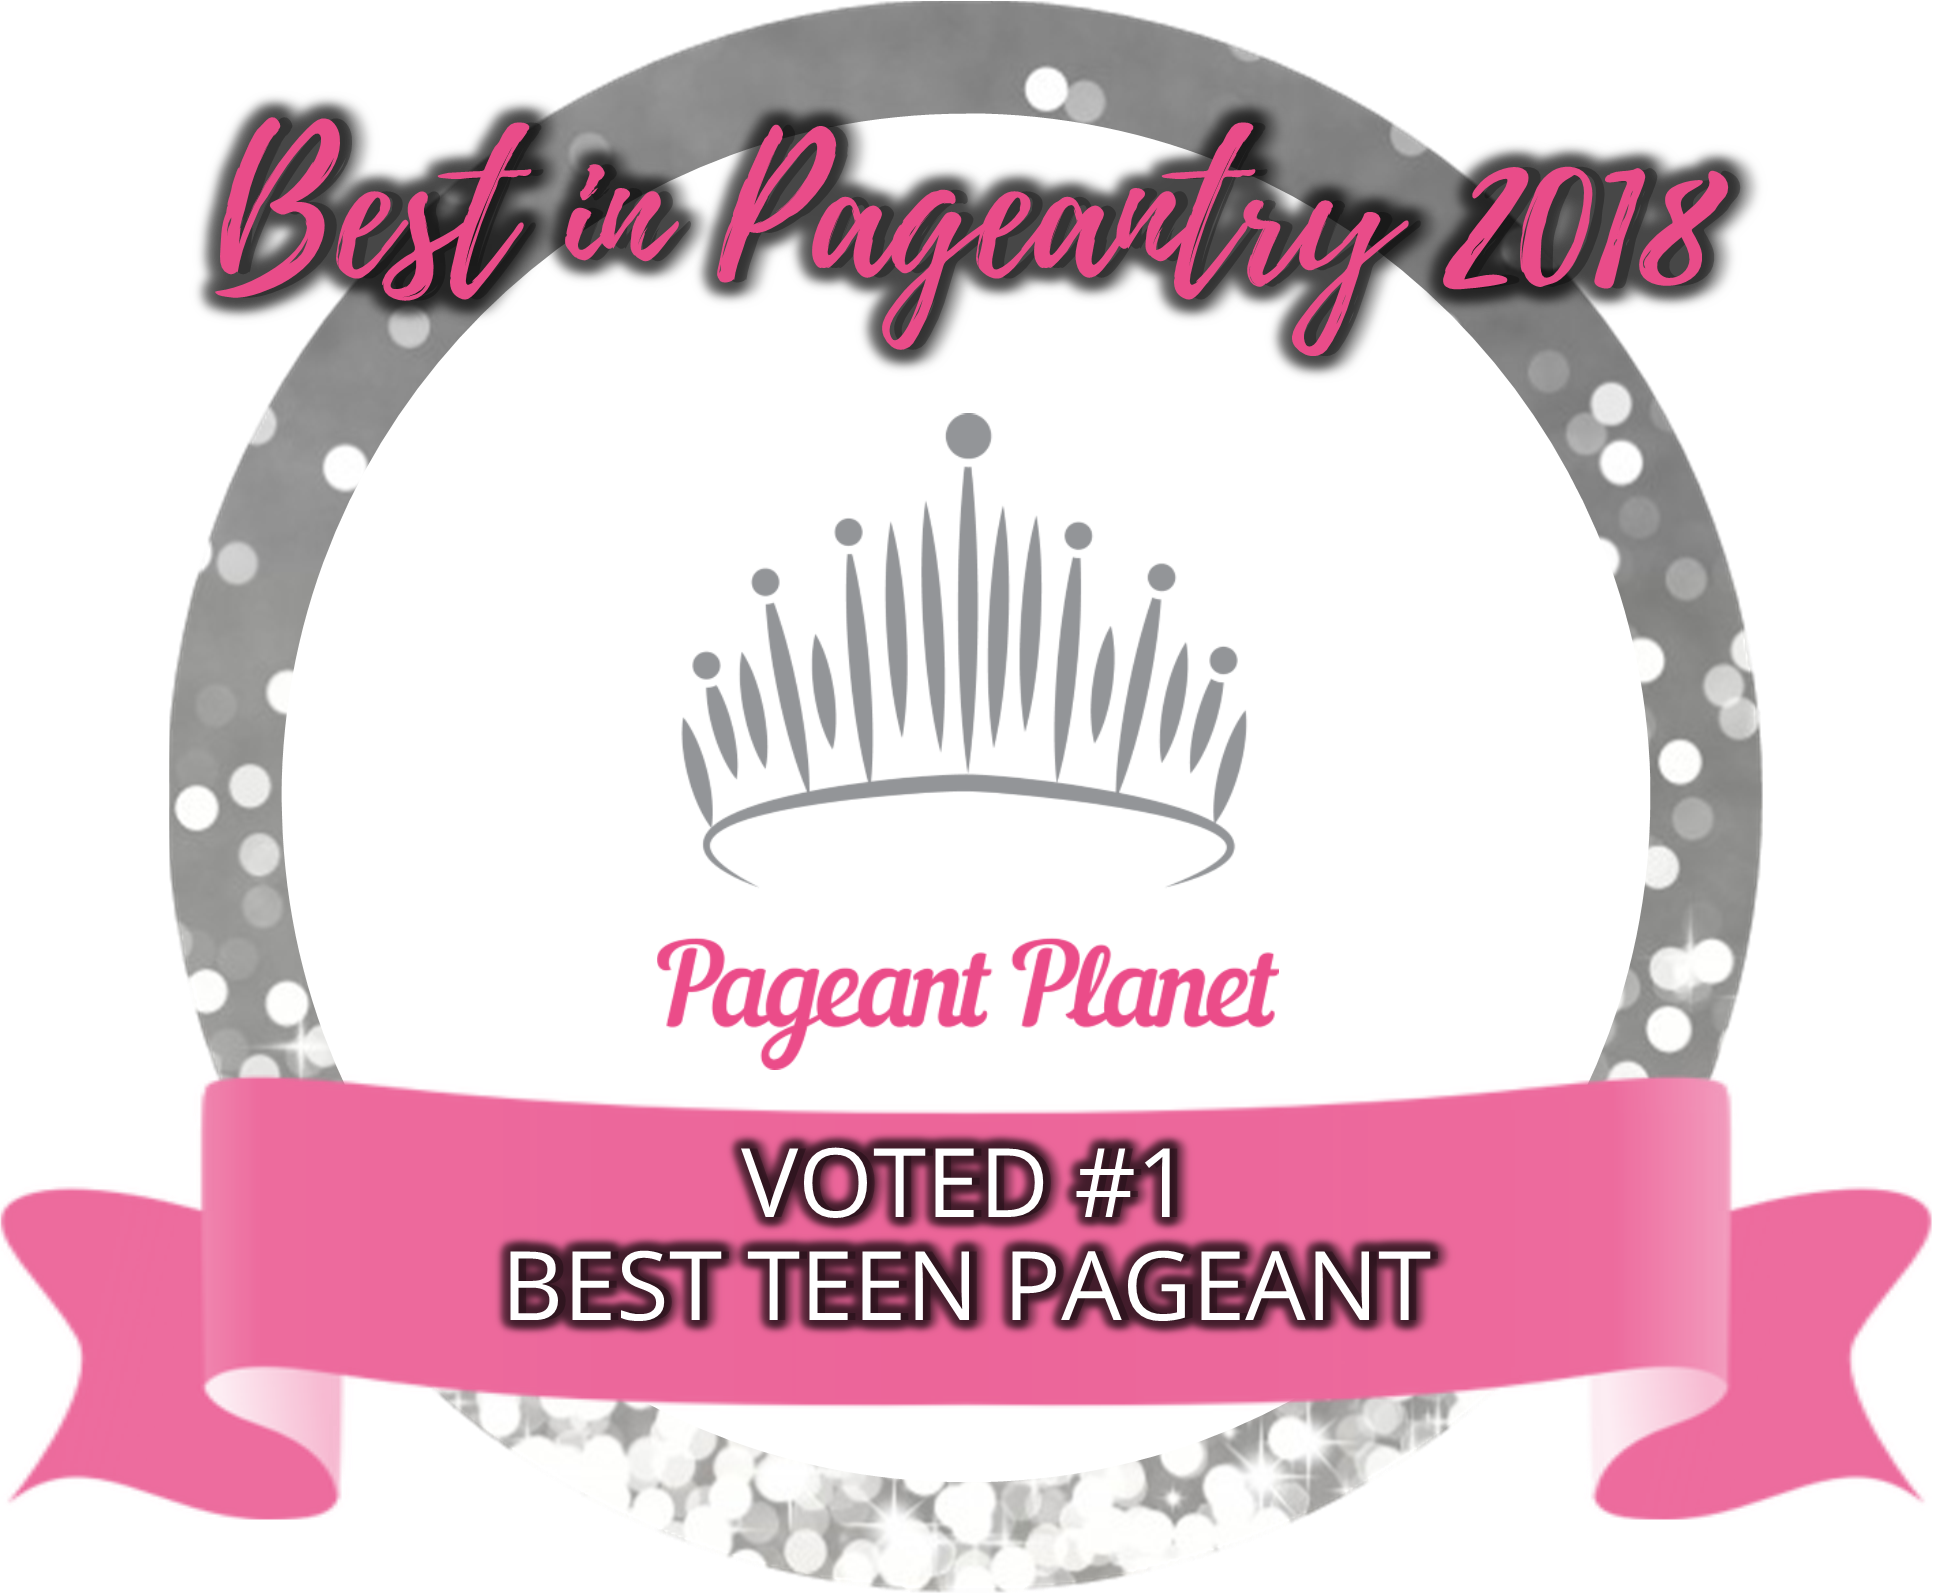 #1 Best Teen Pageant of 2018